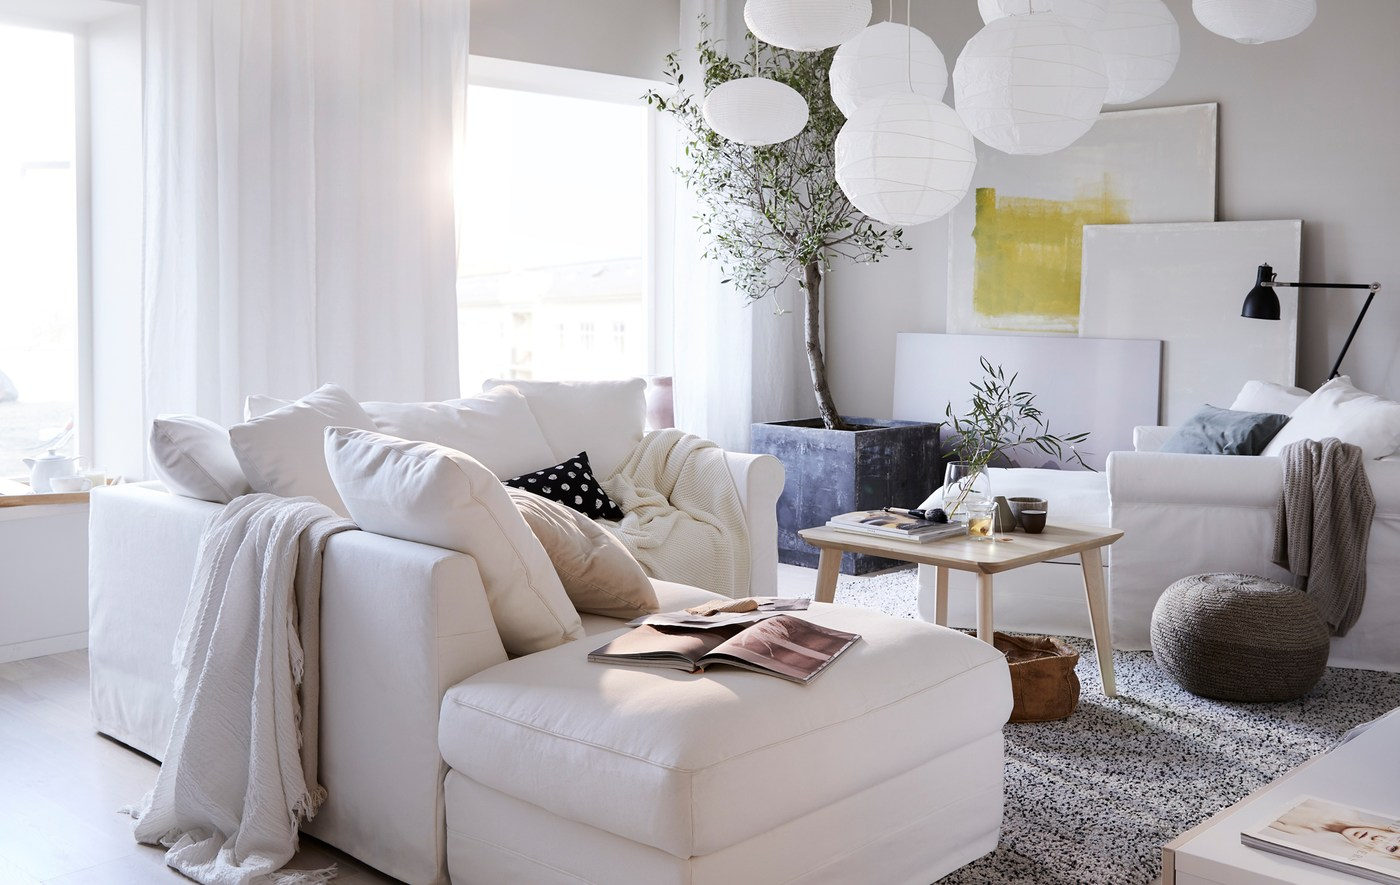 Relax in a comfy sofa that you can adapt so it suits your needs, such as IKEA HÄRLANDA white 3-seat corner sofa!